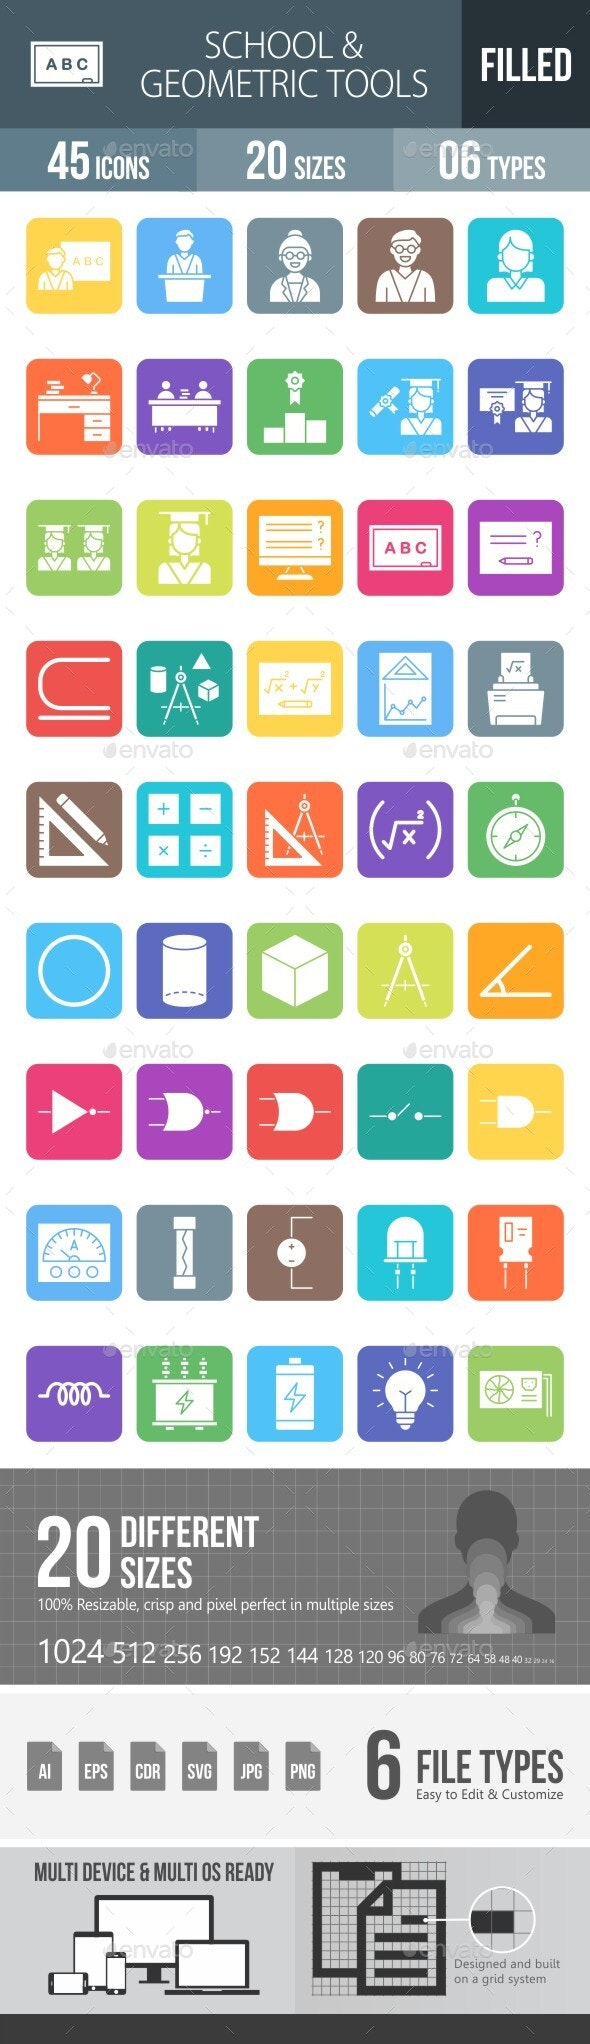 School and Geometric Tools Filled Round Corner Icons - Icons